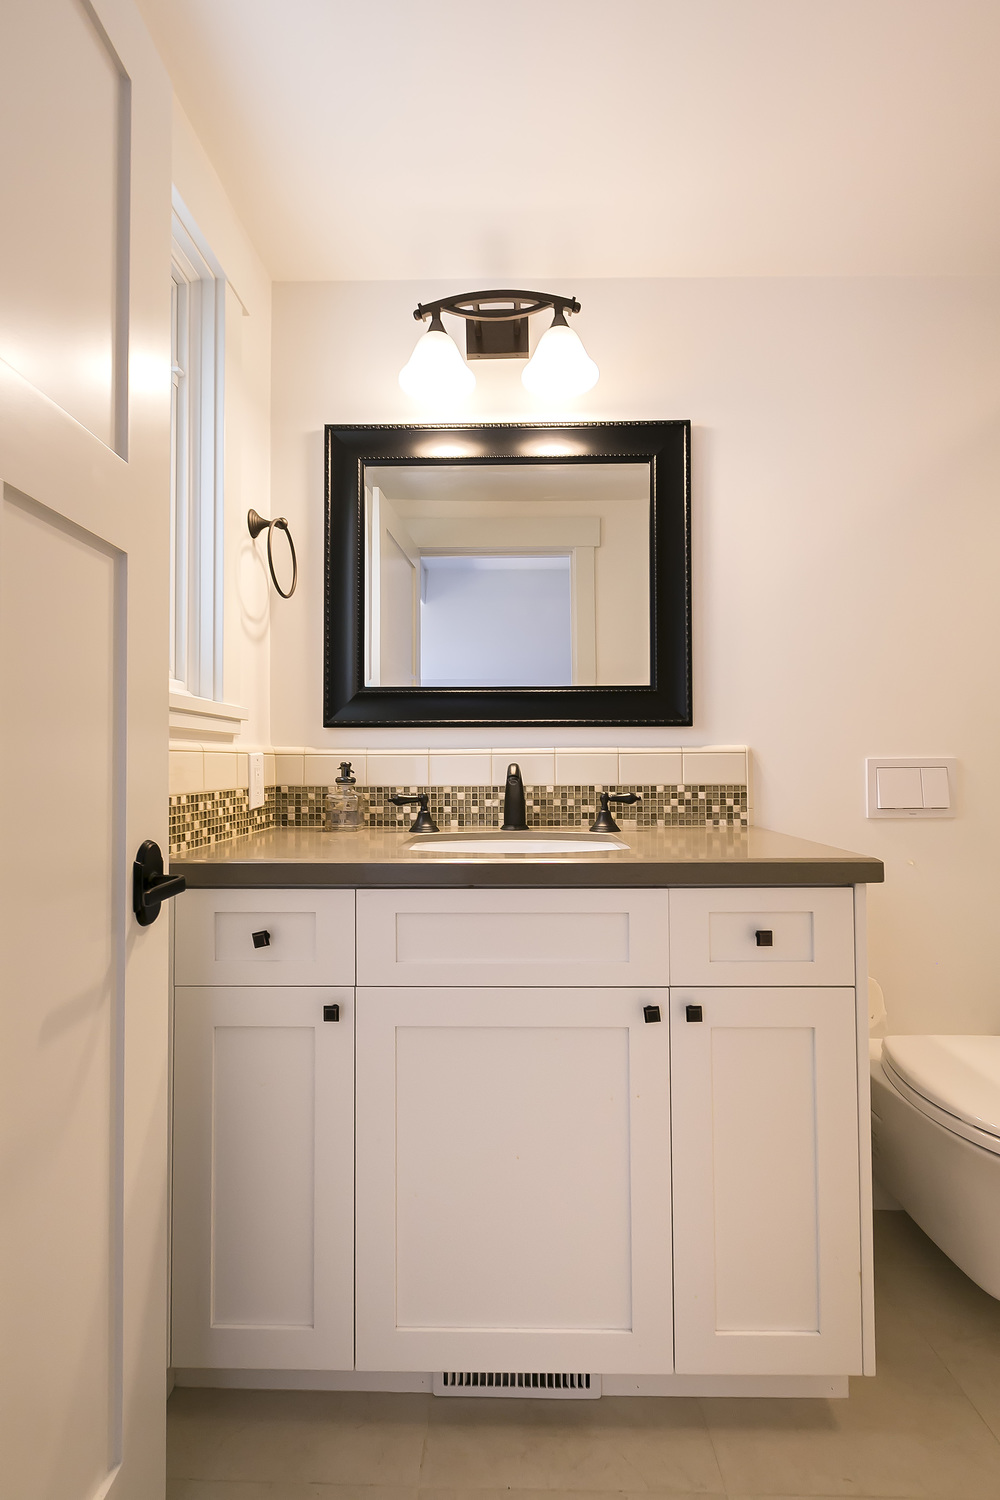 Cayucos bath counter 1.jpg